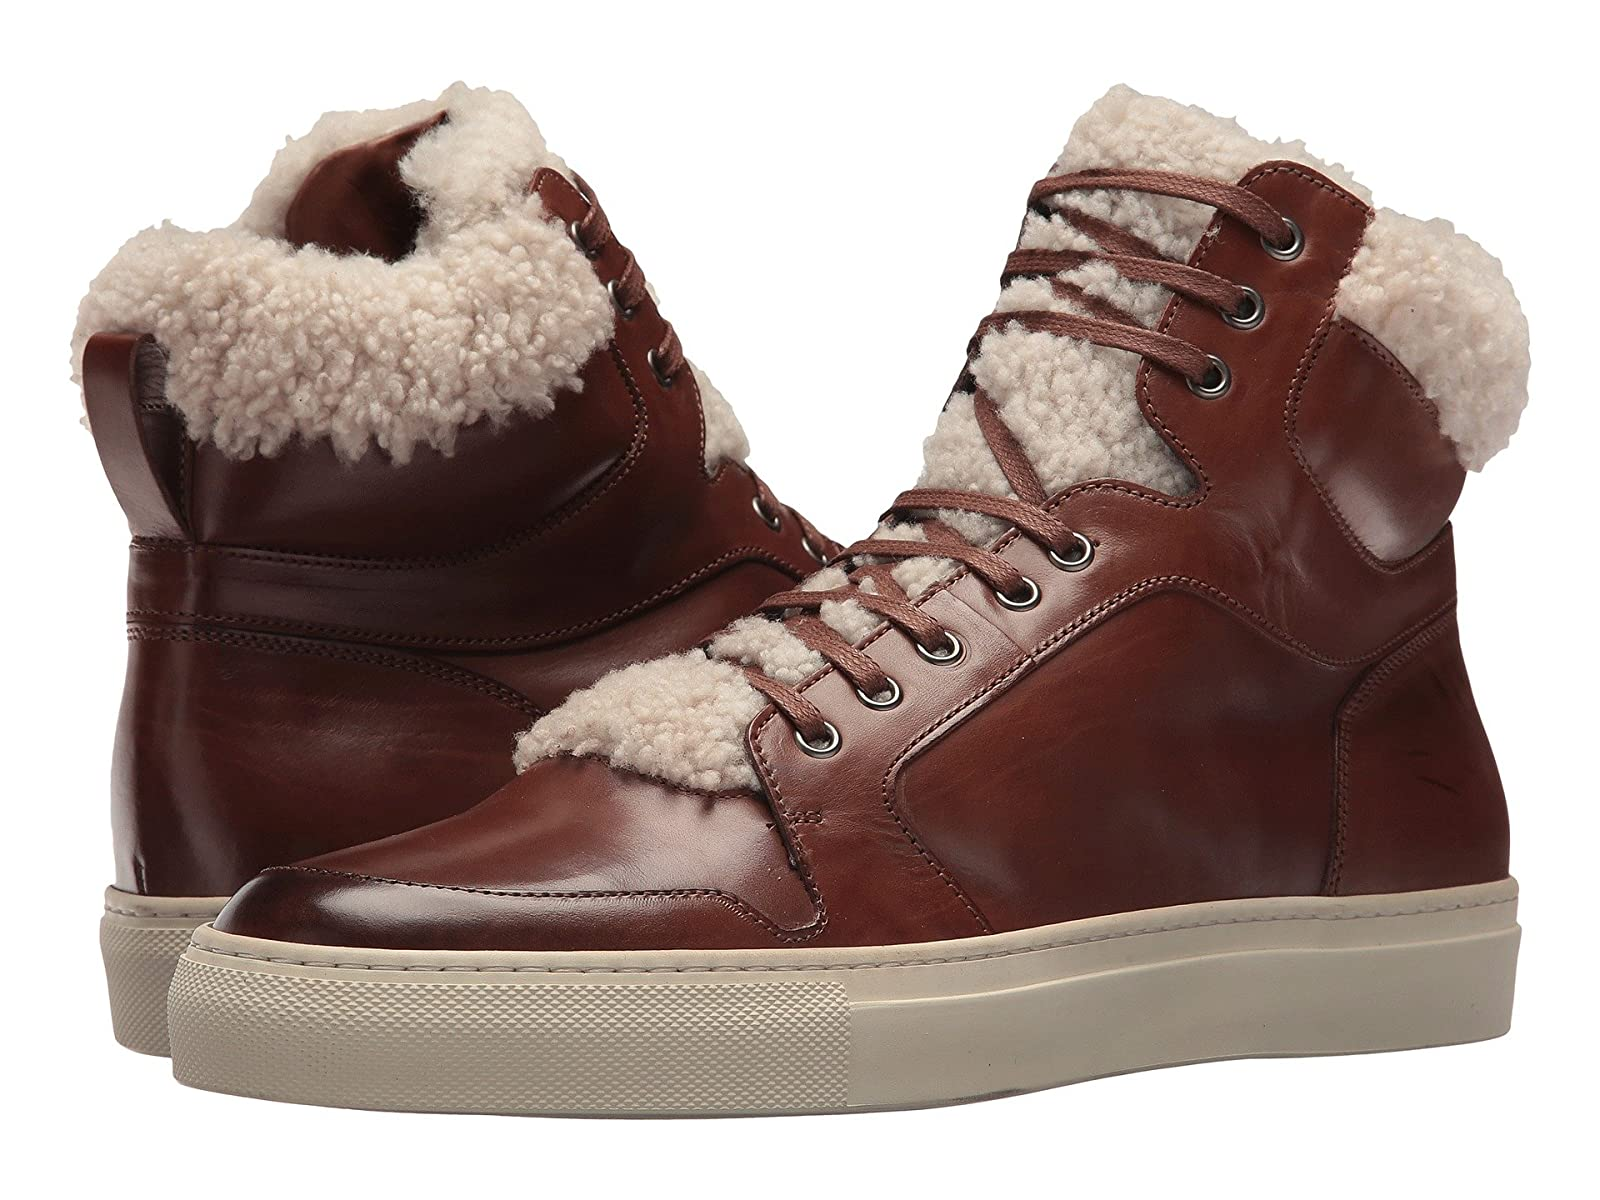 To Boot New York WoosterCheap and distinctive eye-catching shoes